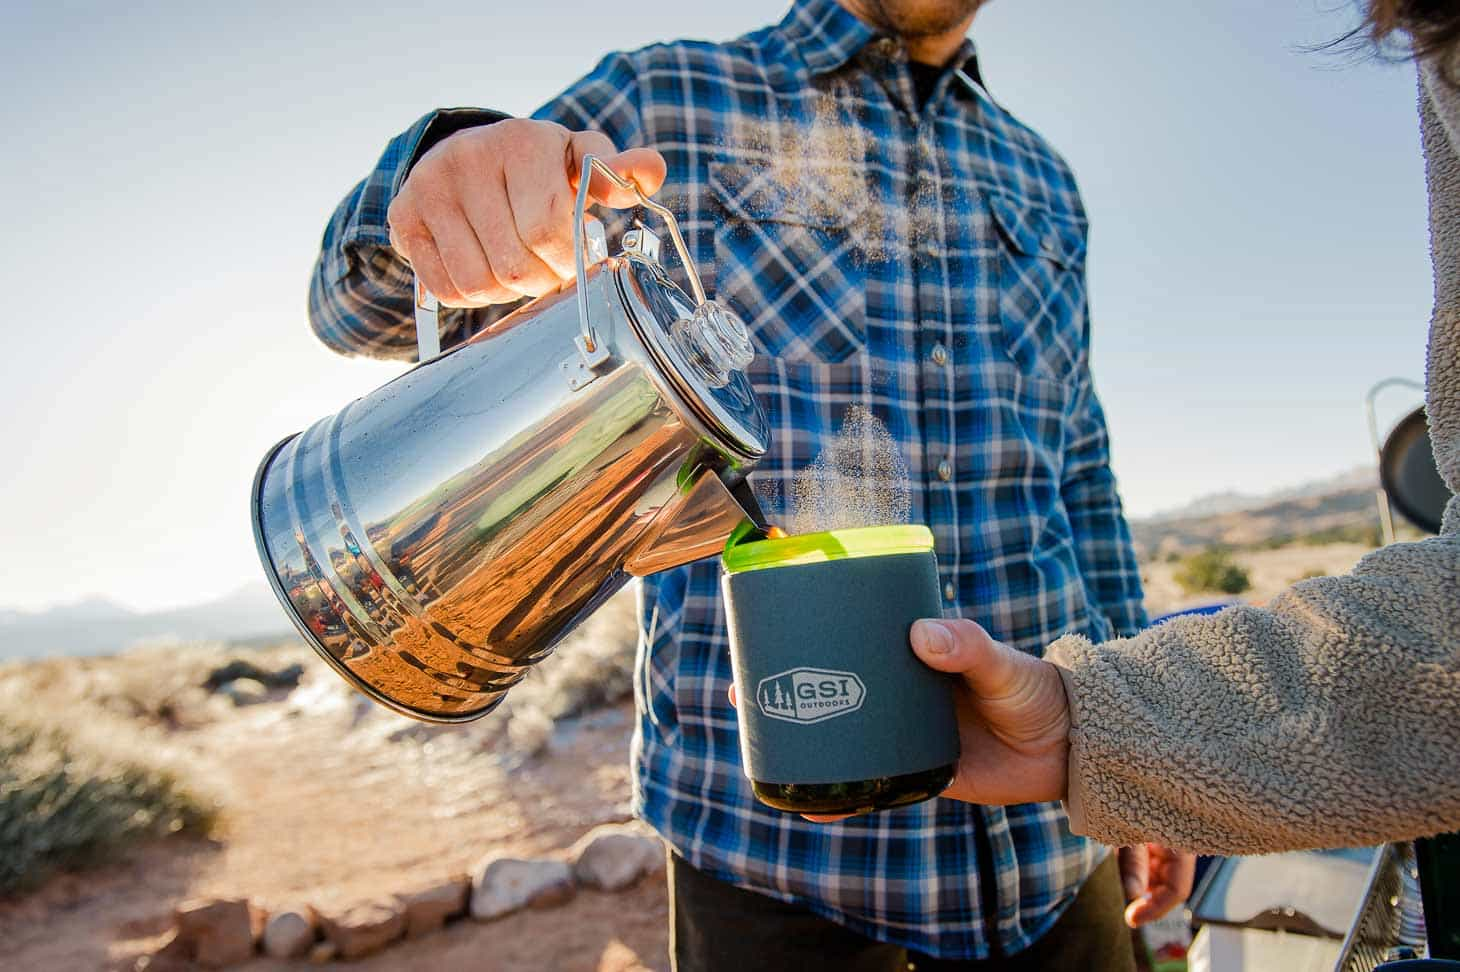 How To Cook Coffee While Camping